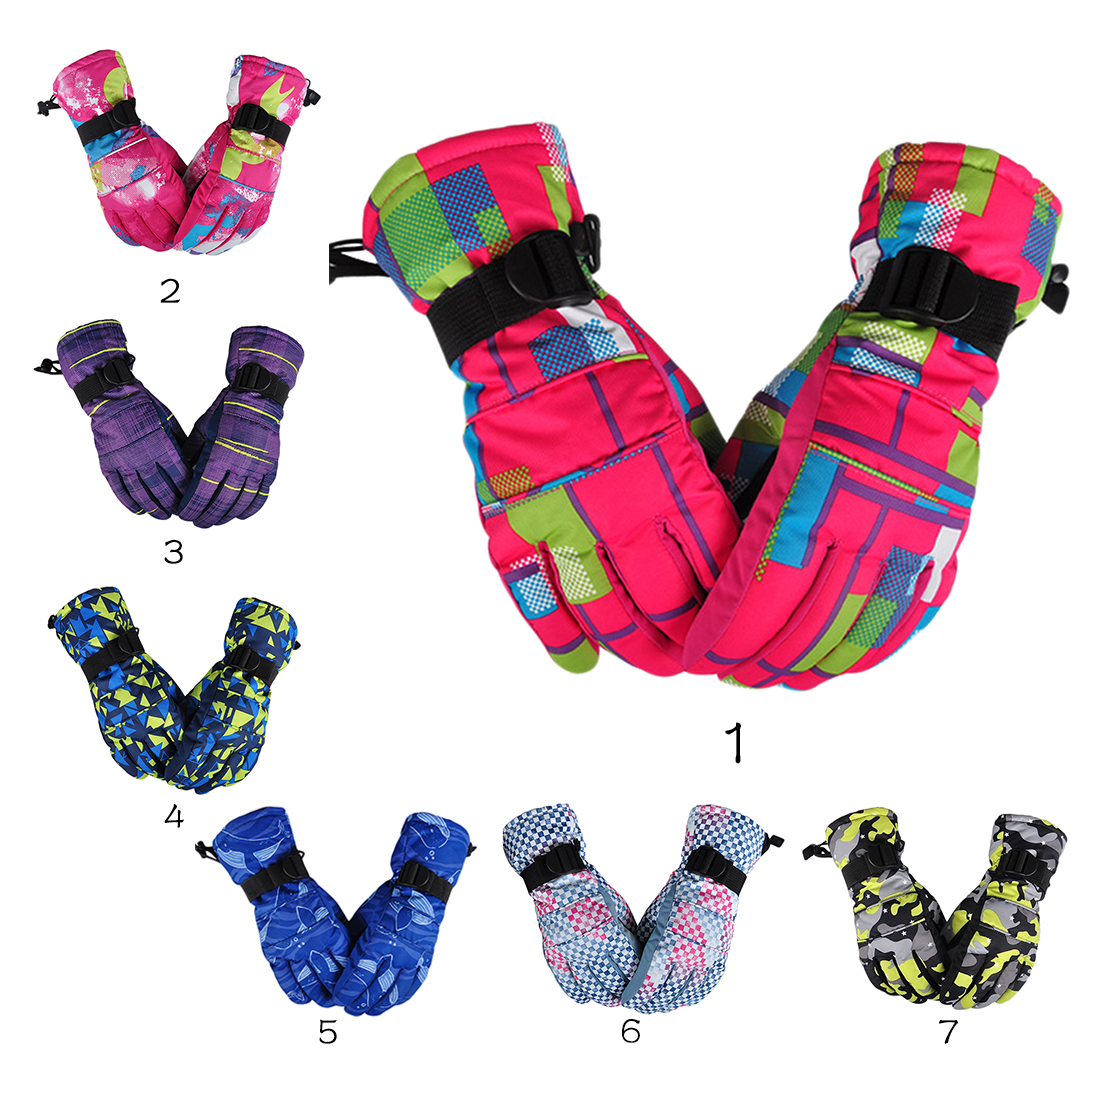 Ski Gloves Winter Waterproof Anti-Cold Warm Gloves Outdoor Sport Snow Sportswear Skiing ciclismo